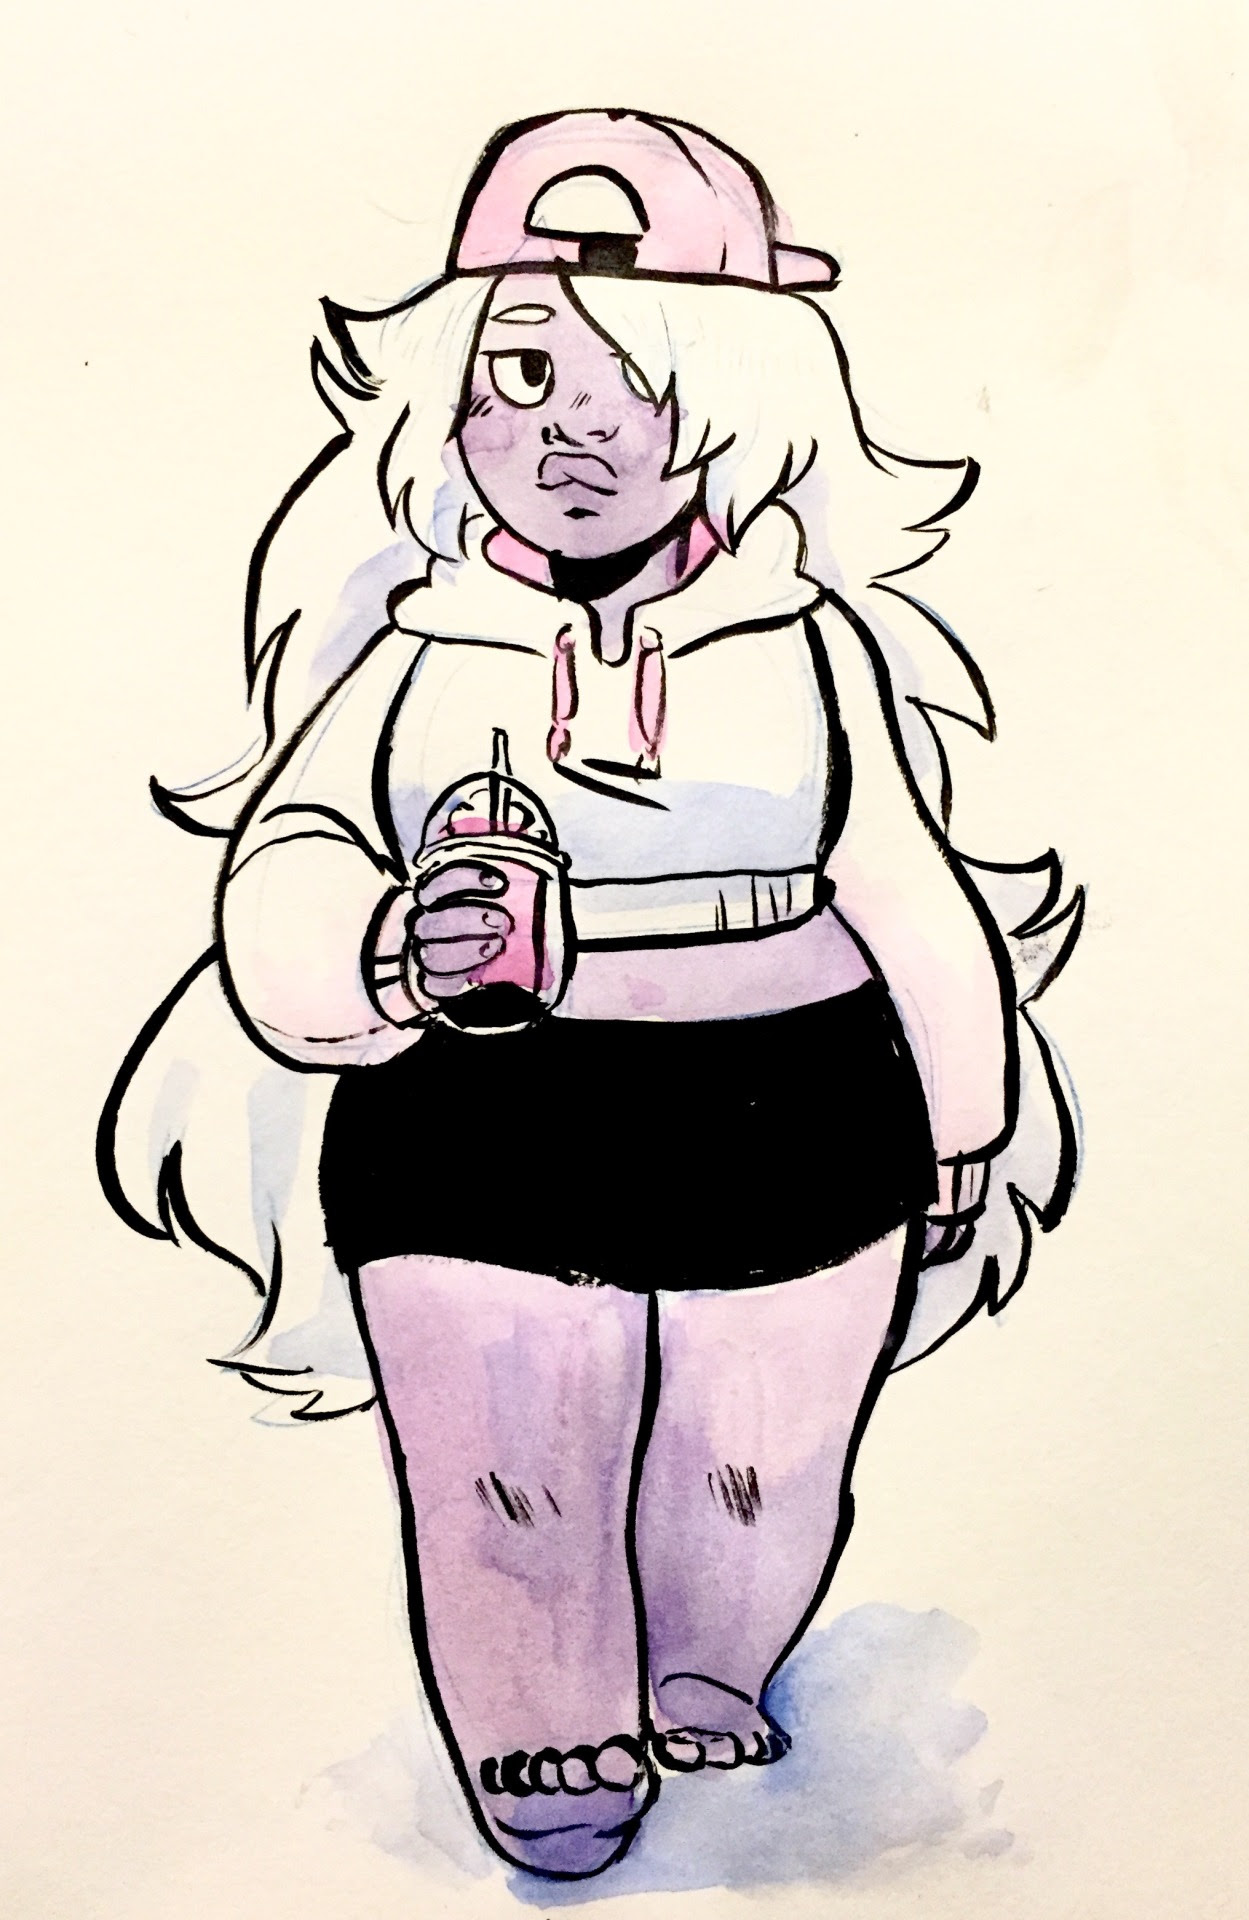 i never use my inks so! heres an amethyst doodle to test my inking capabilities